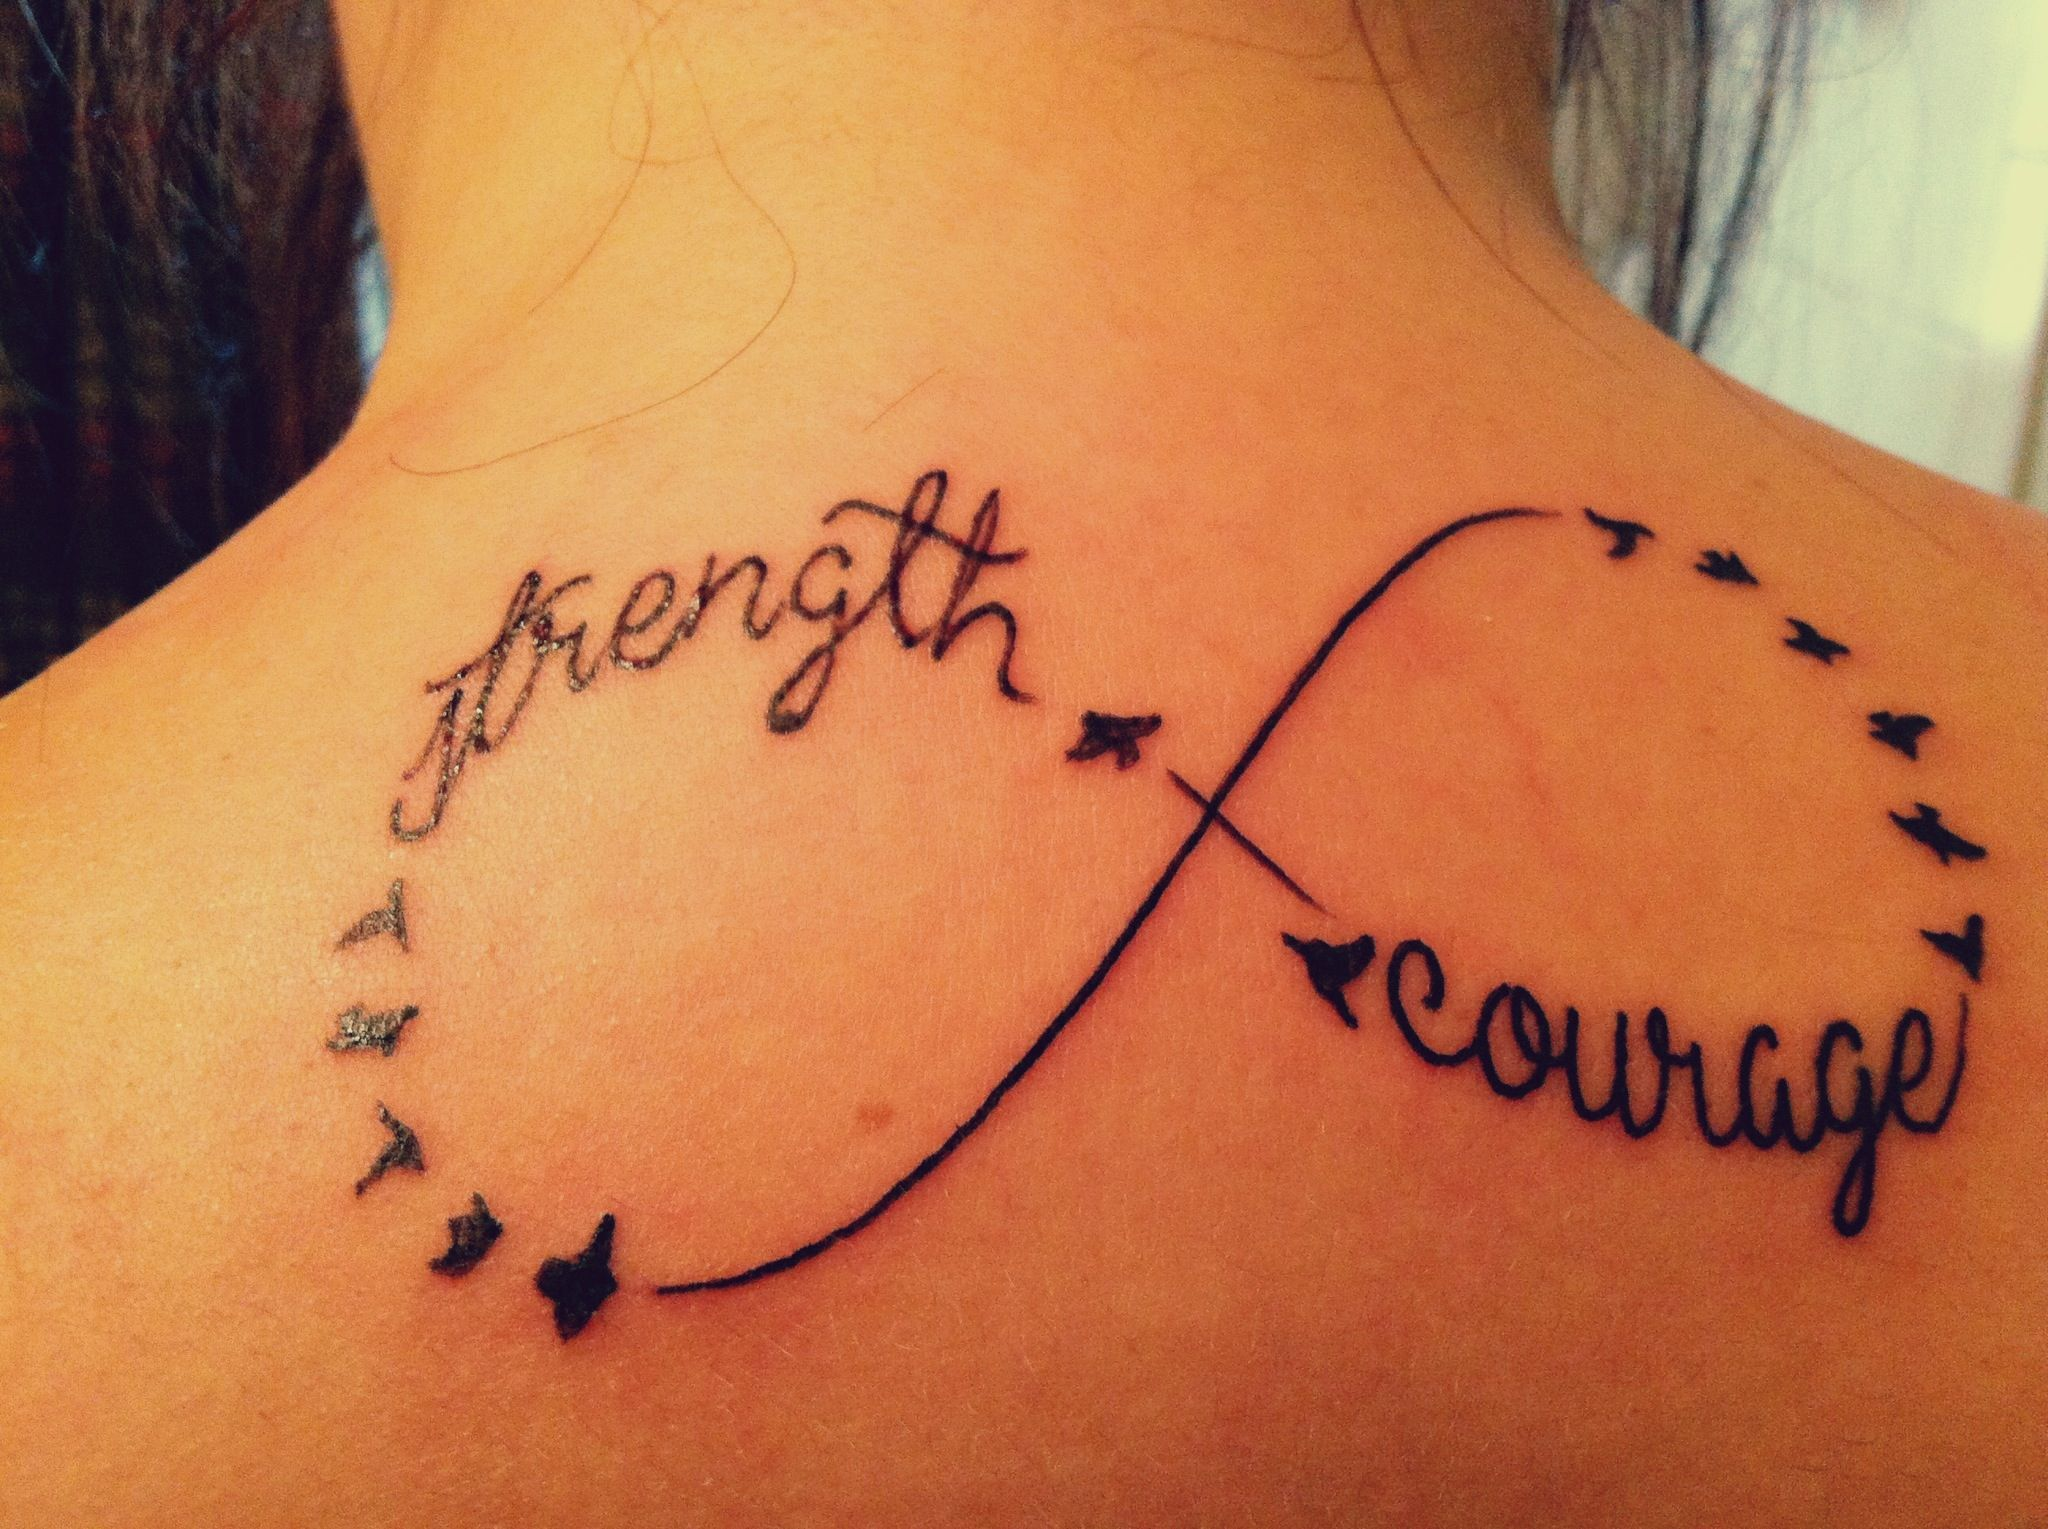 Strength and courage infinity tattoo tattoos pinterest birds infinity tattoo sign on the back biocorpaavc Images